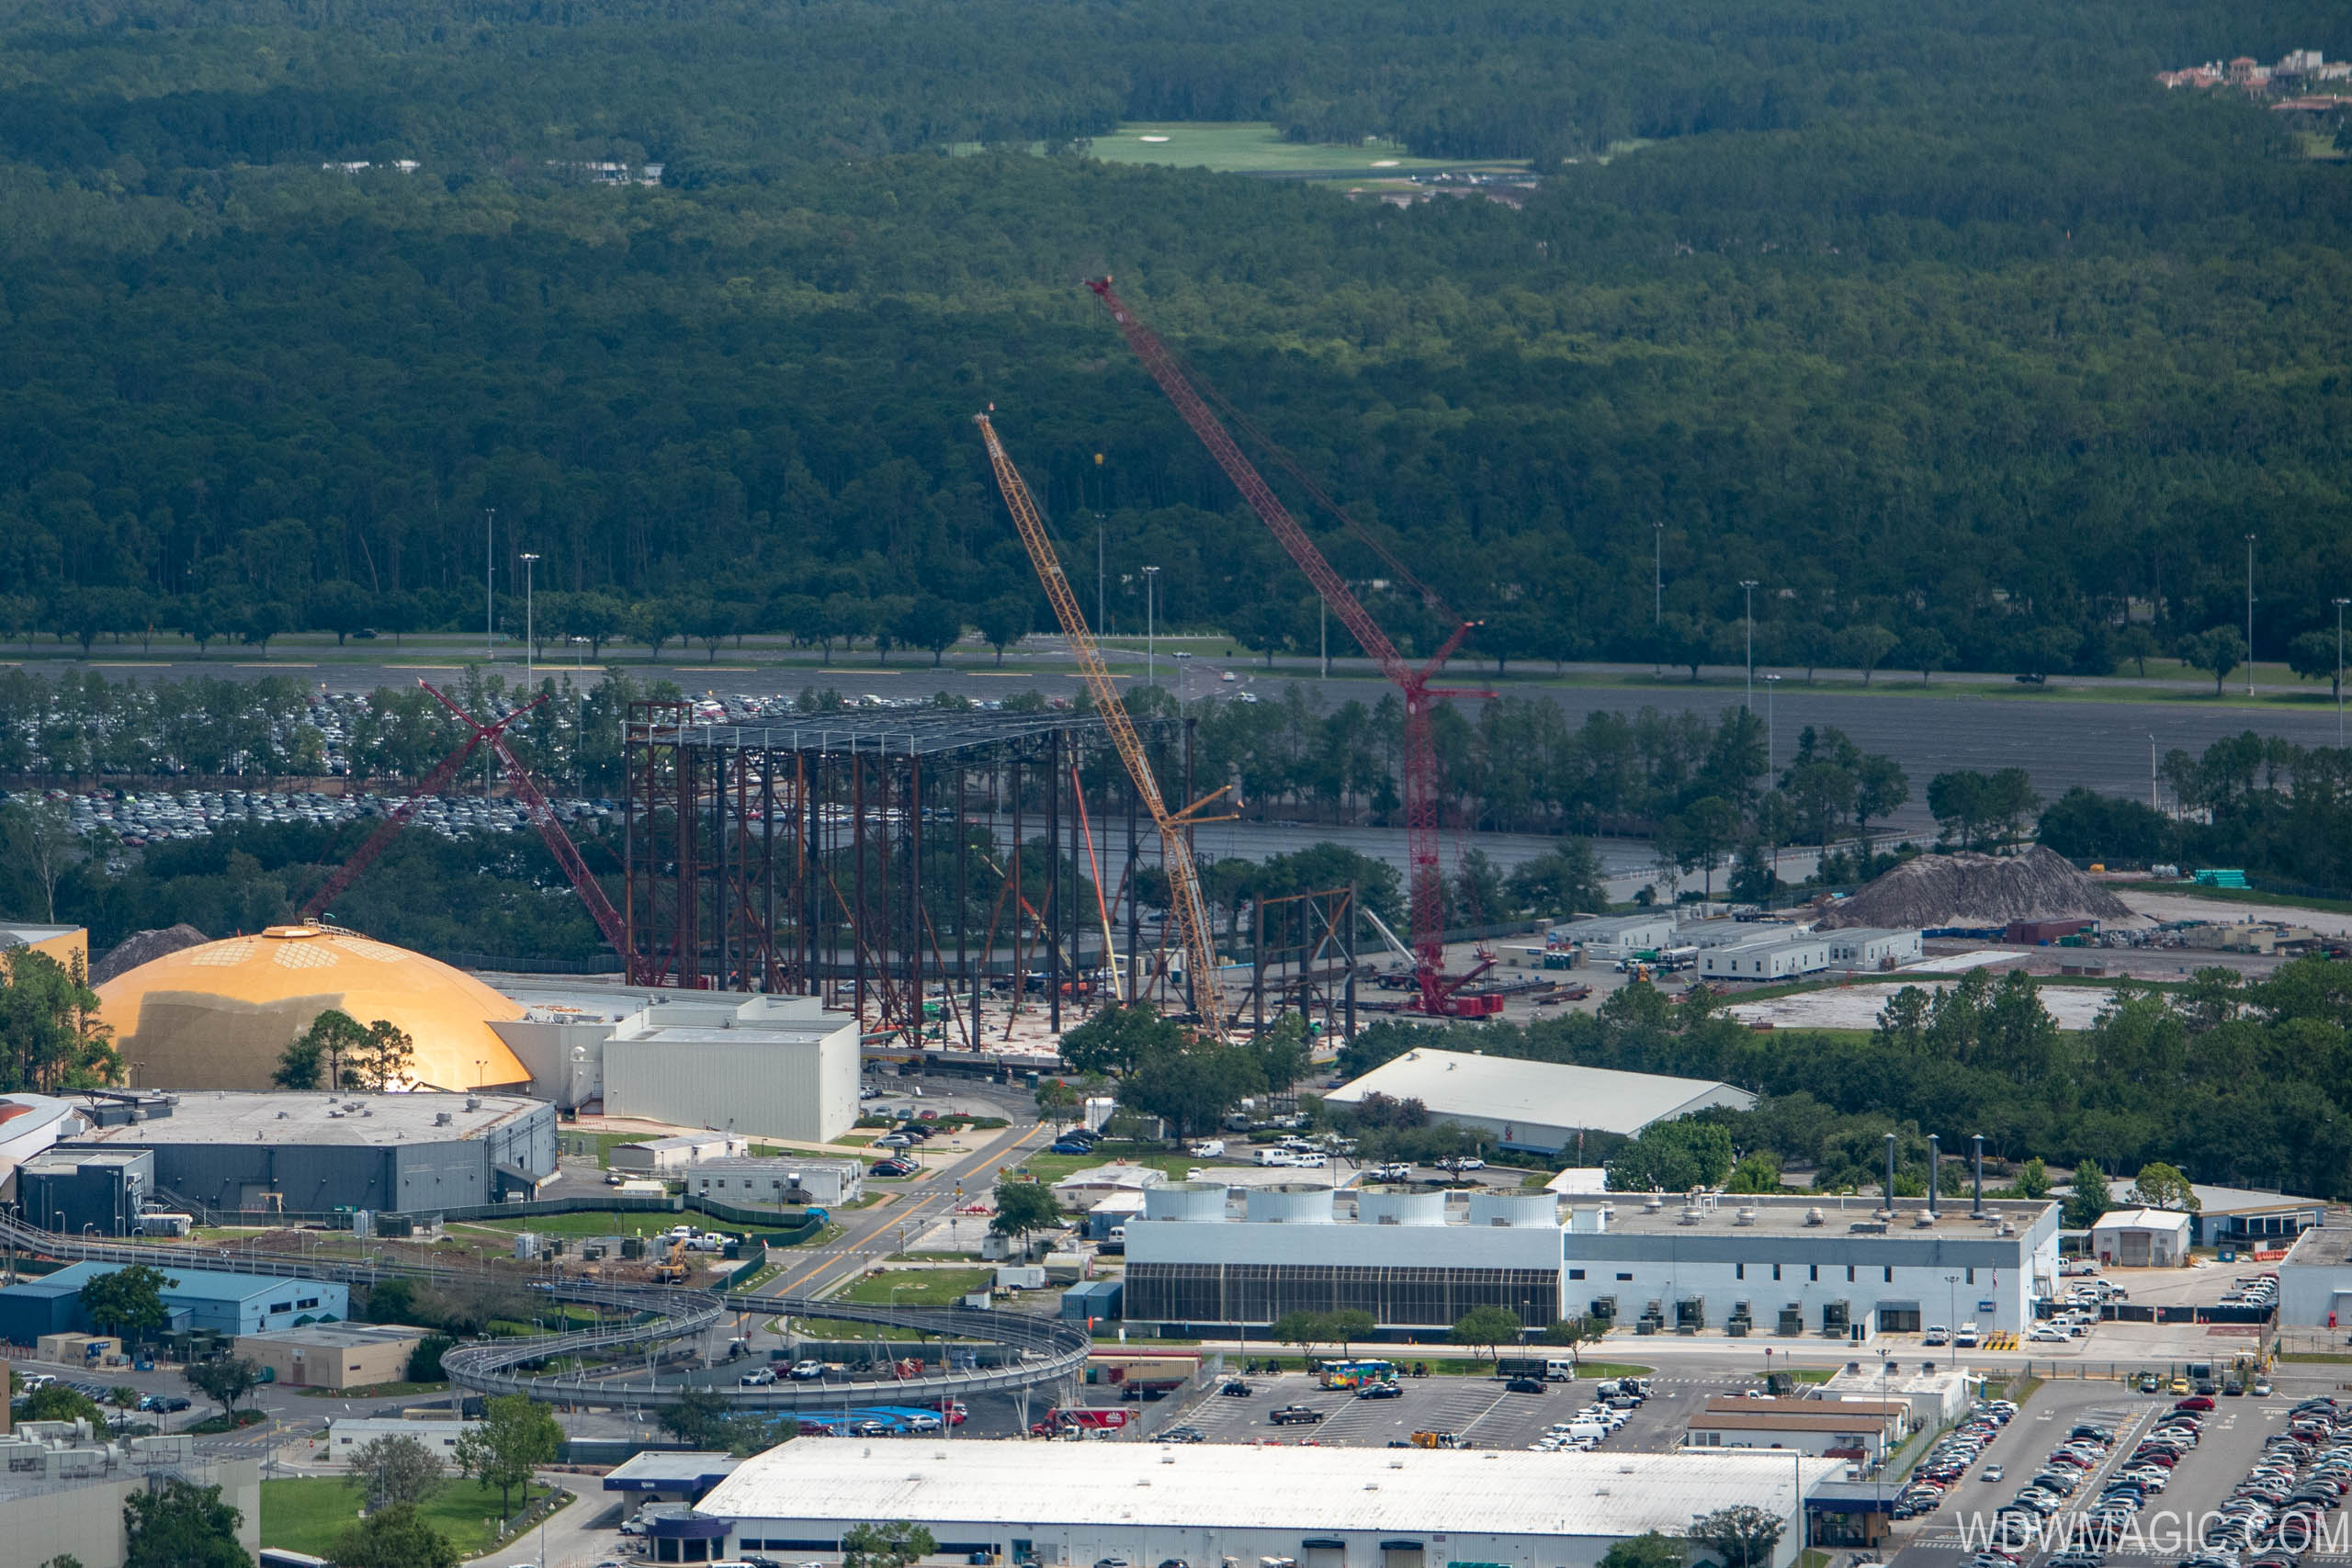 Guardians of the Galaxy construction aerial views - July 2018